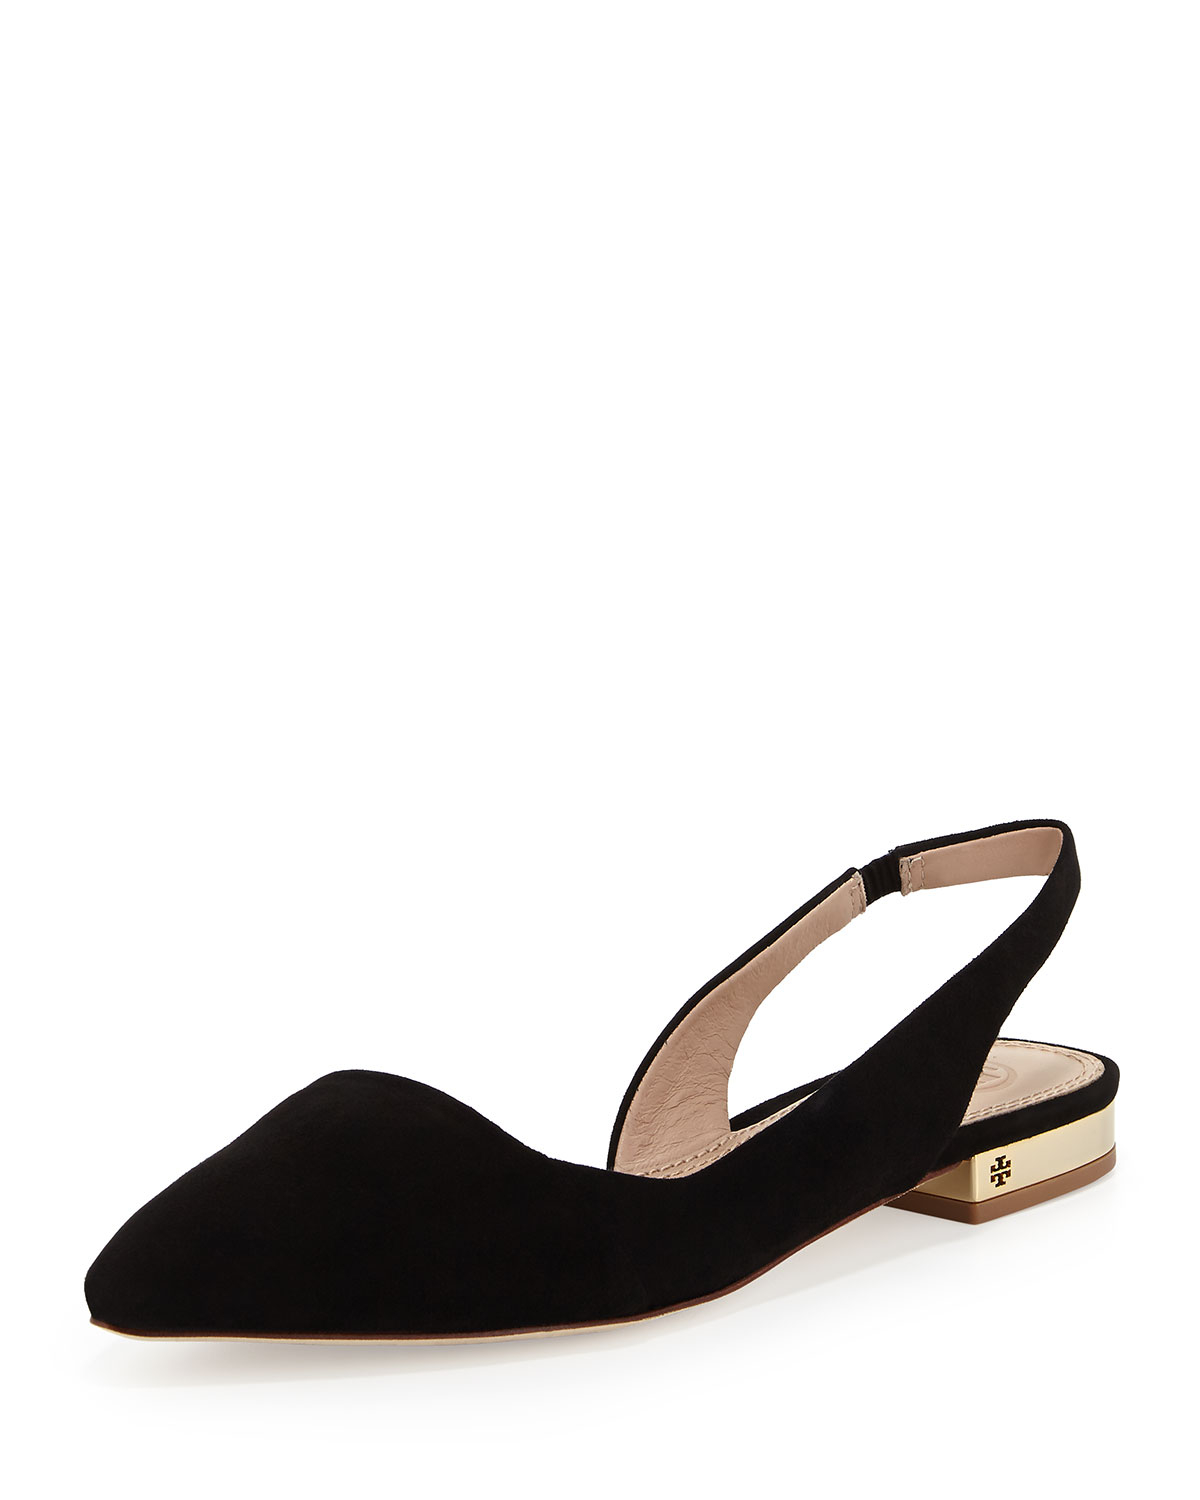 89051b827e375 Tory Burch Classic Point-Toe Slingback Flat in Black - Lyst